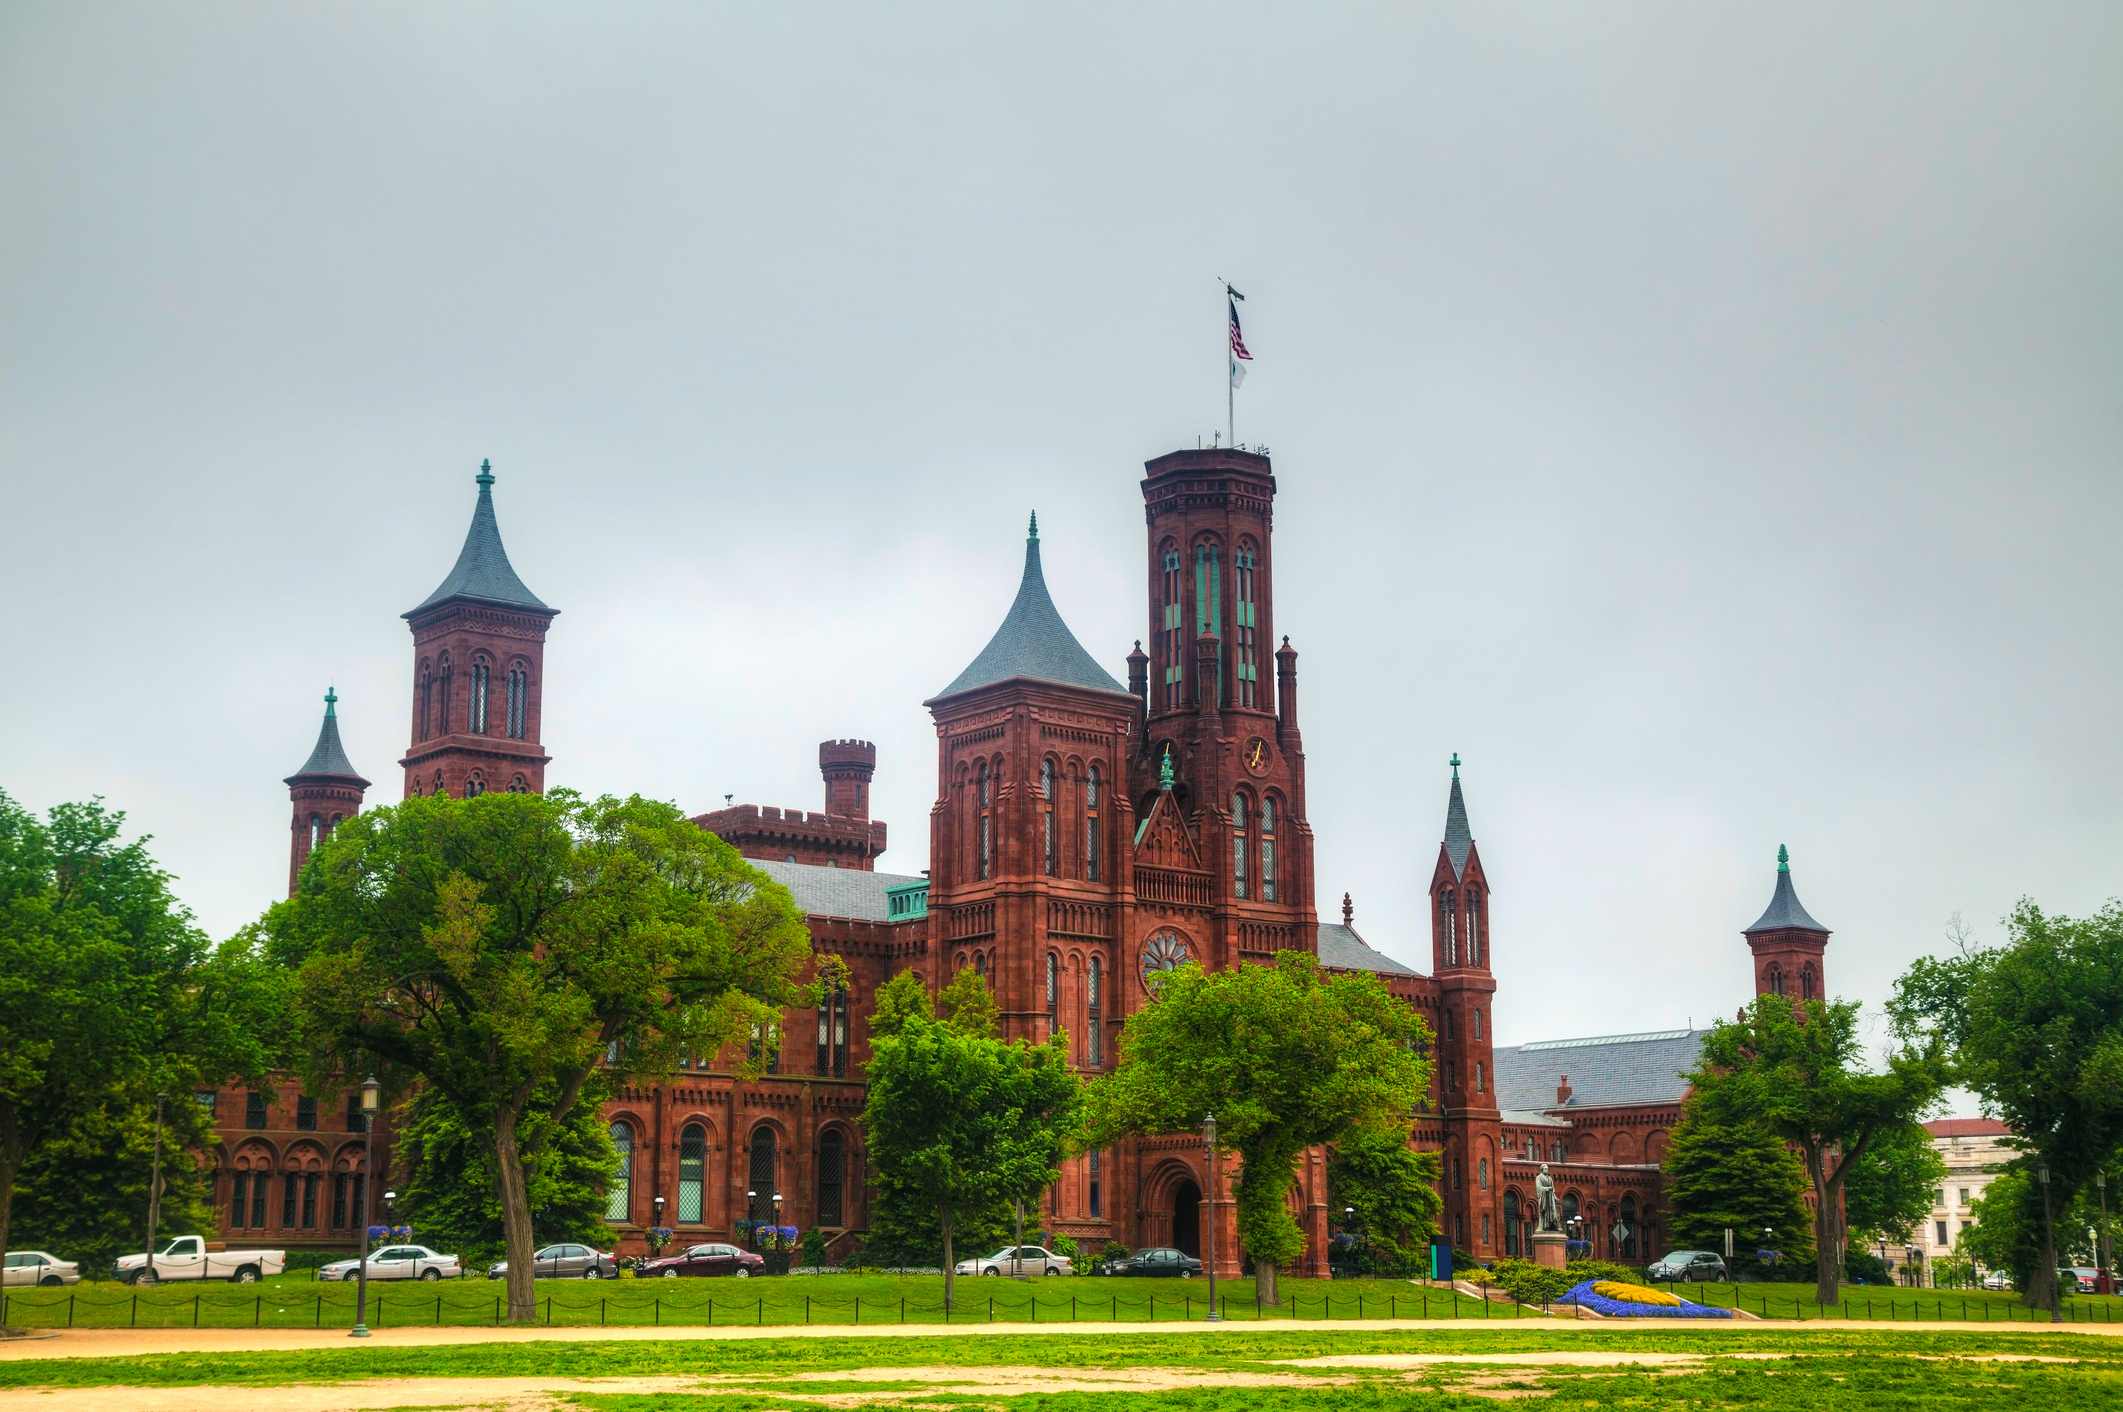 Smithsonian Institution Building (the Castle) in Washington, DC in the morning